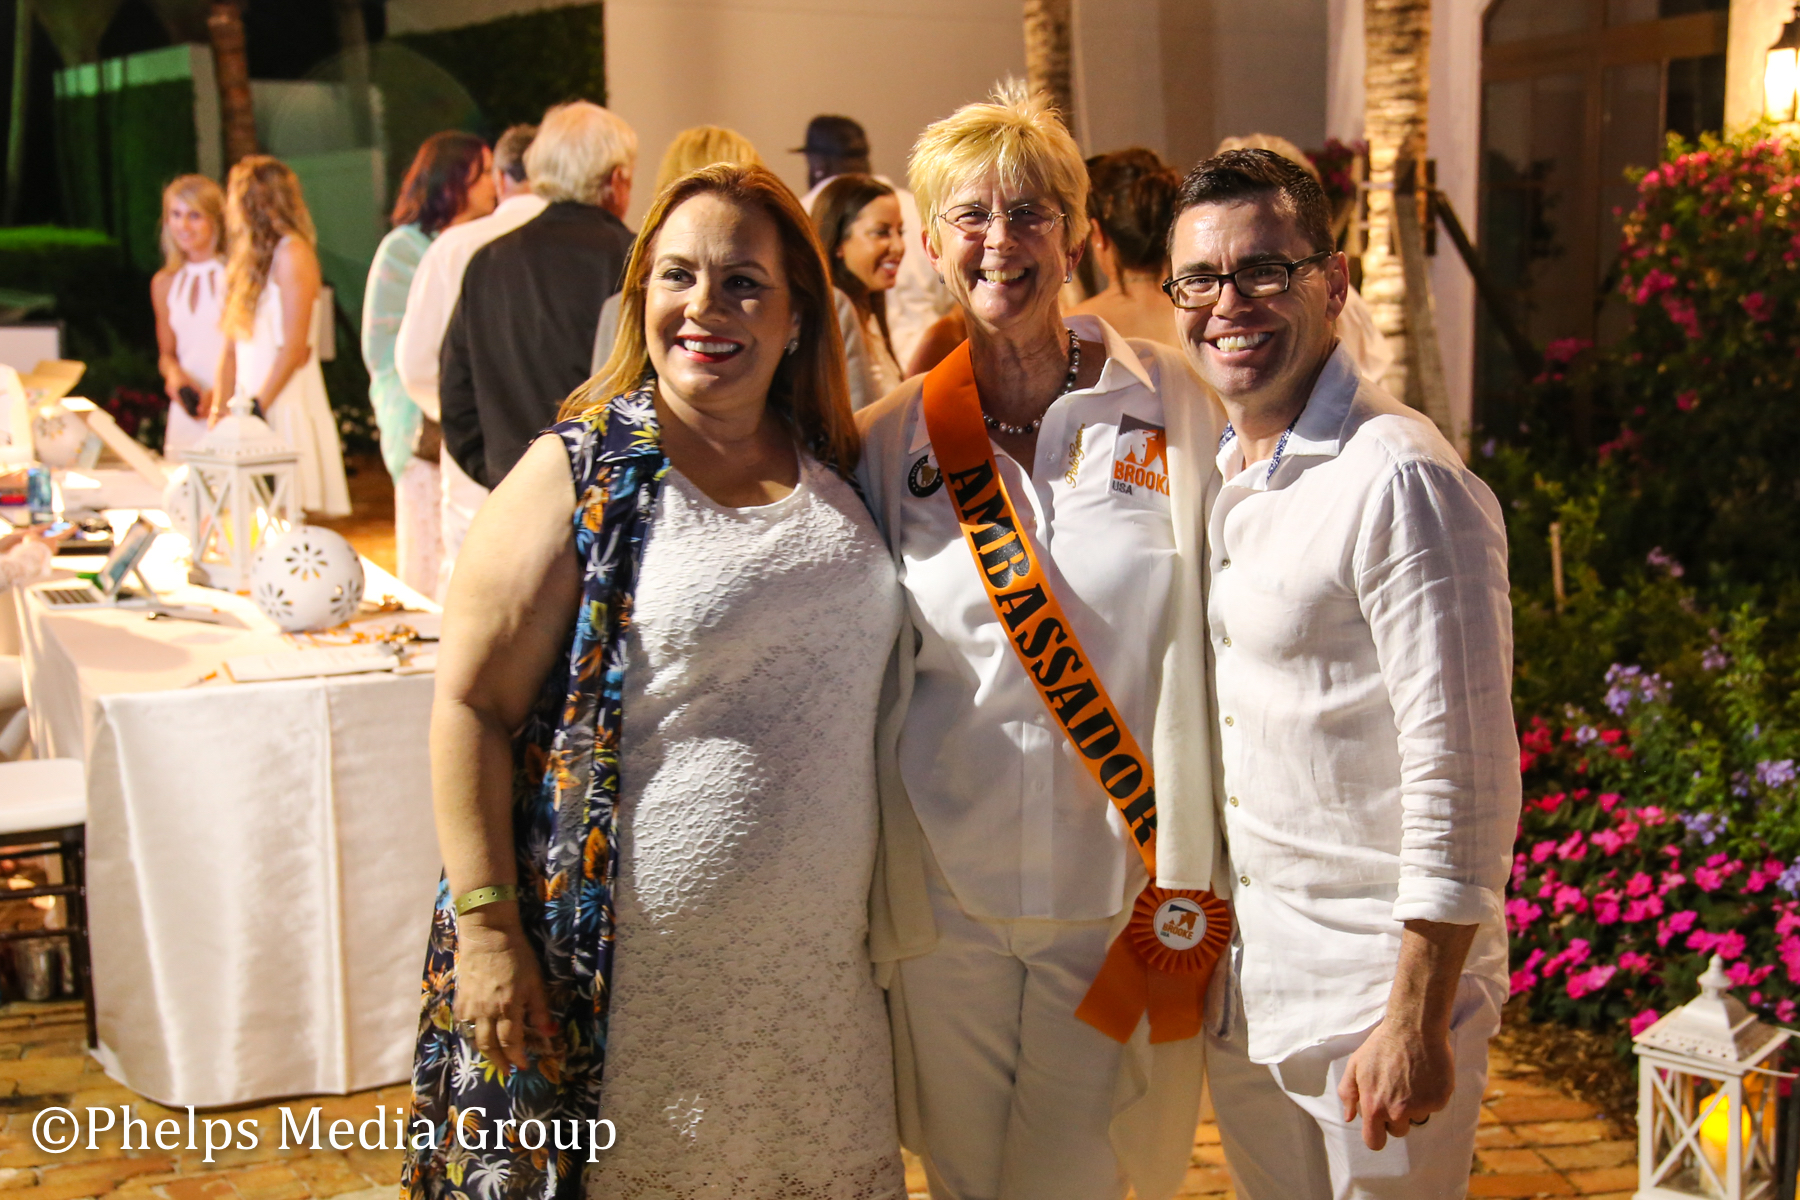 Emily Dulin Margaret Duprey and Brendan; Nic Roldan's 2nd Annual Sunset Polo & White Party, FL, by Phelps Media.jpg